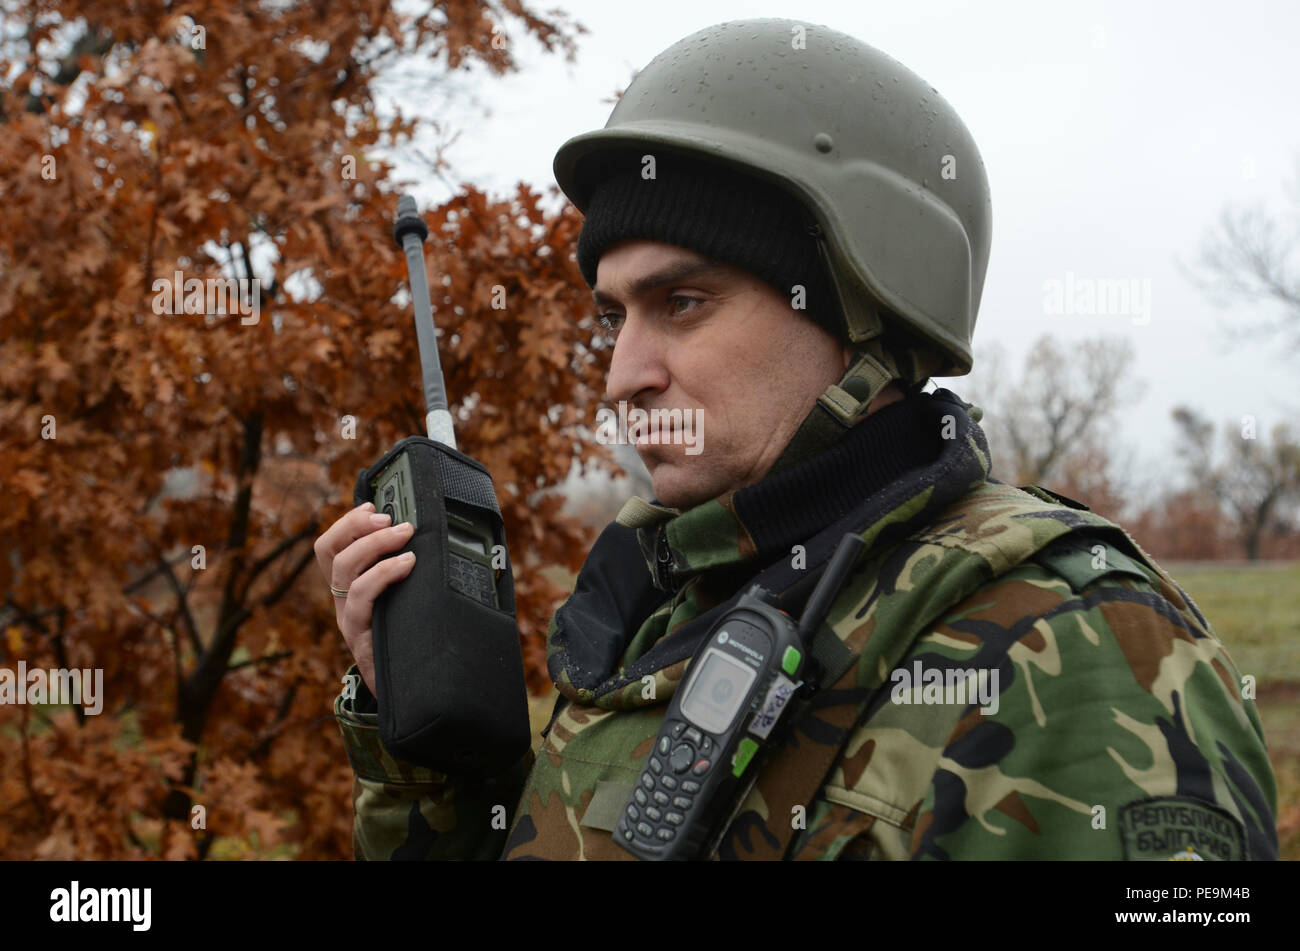 A Bulgarian soldier of 1-61st Mechanized Battalion listens to the radio for further instructions during Exercise Peace Sentinel at Novo Selo Training Center, Bulgaria, Nov. 24, 2015. (U.S. Army photo by Staff Sgt. Steven M. Colvin/Released) - Stock Image